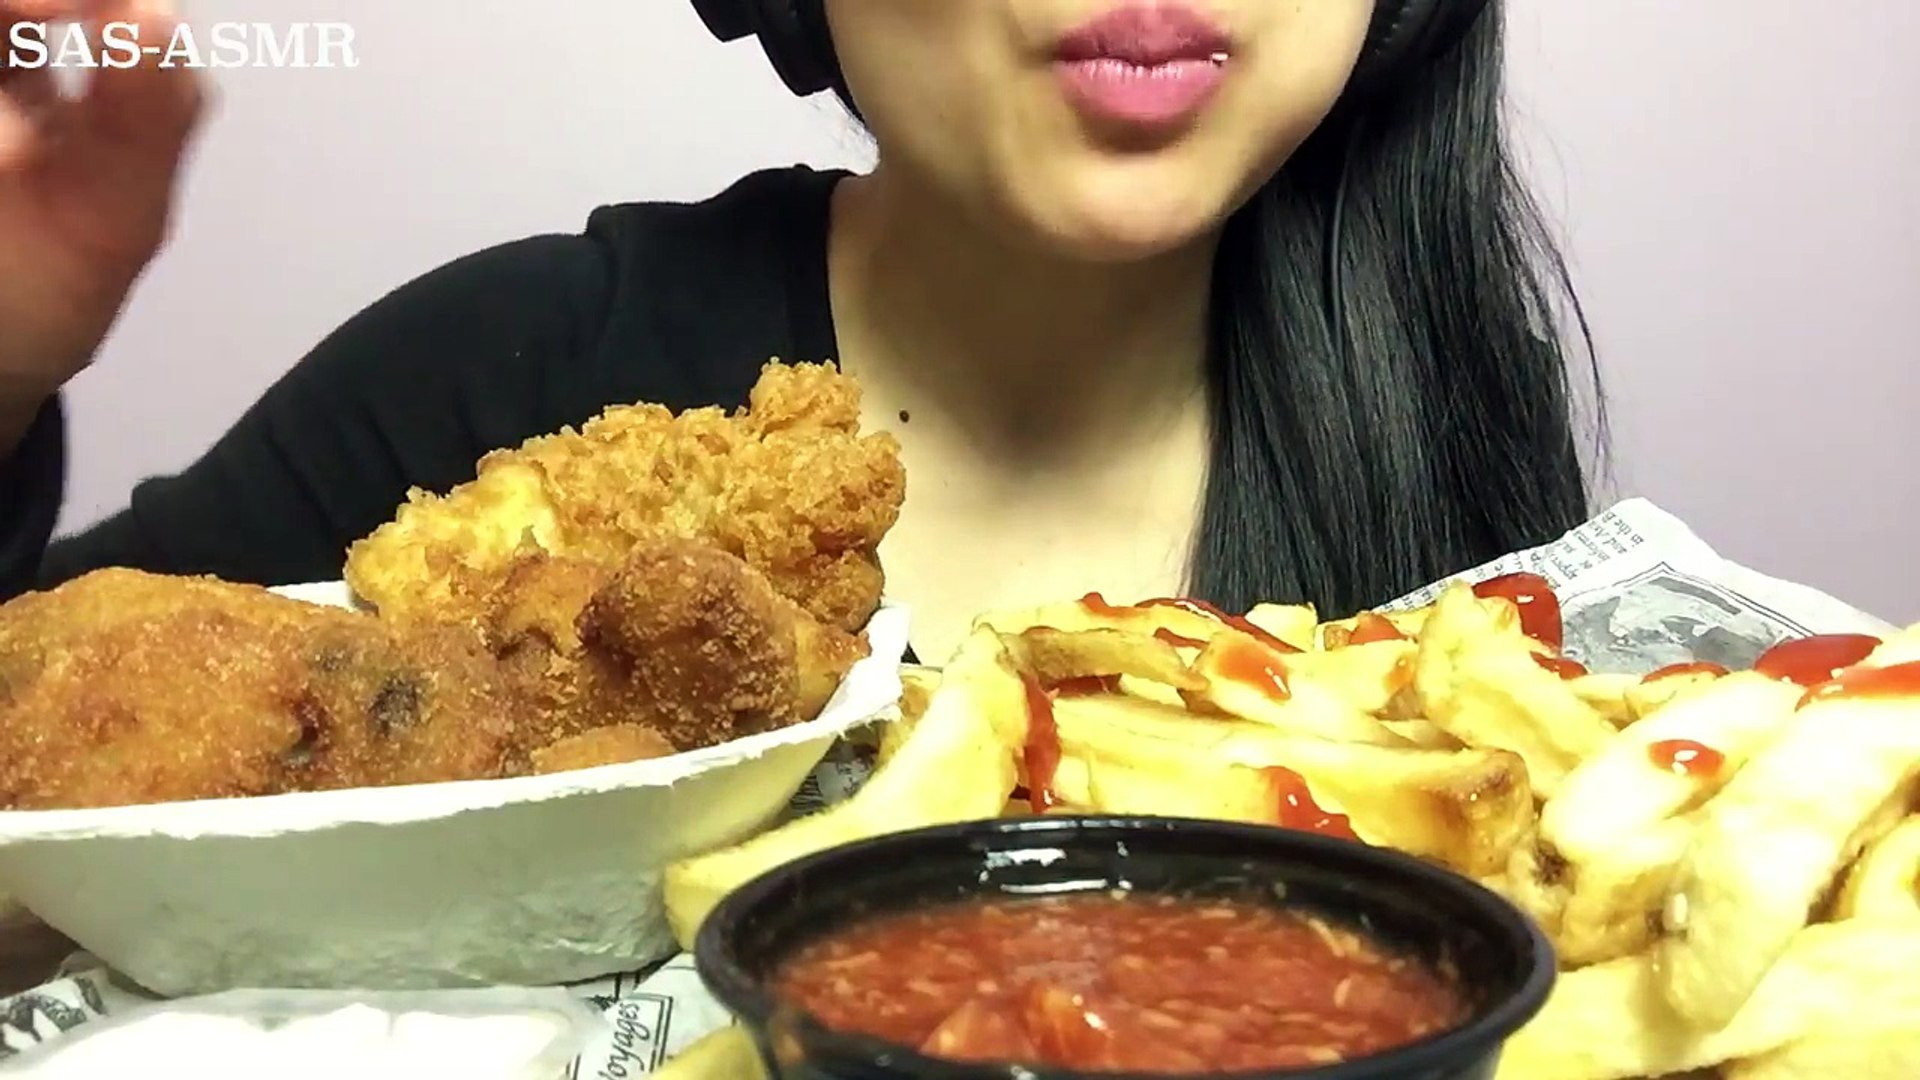 Sas Asmr Chicken Bobotie U have to like my videos comment and follow for a chance to win.good luck🤪. sas asmr chicken bobotie